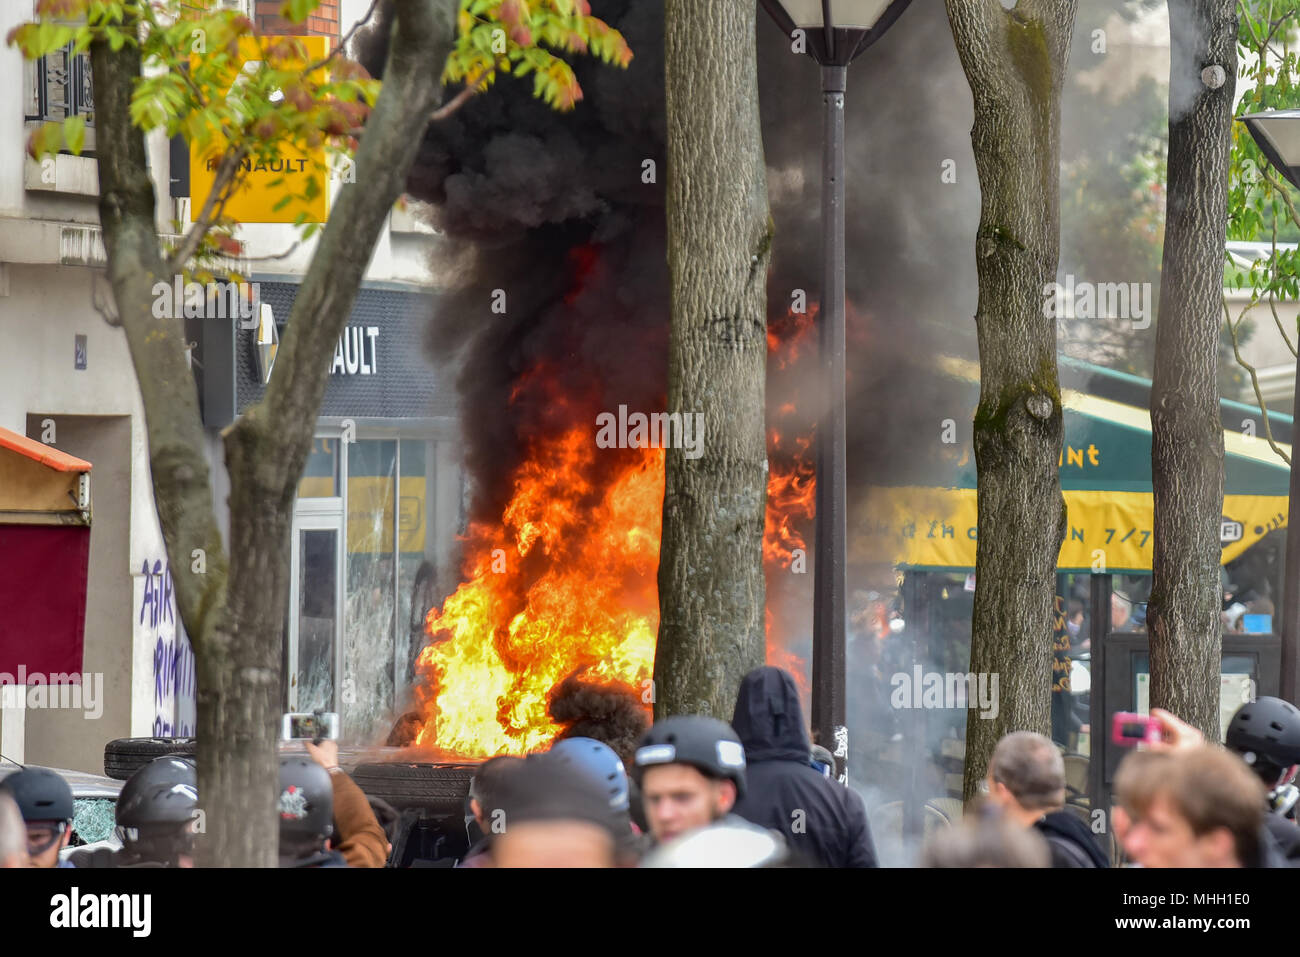 Paris, France. 1st May 2018. Paris police clash with protesters as demonstrations turn violent. PICTURED: 'Black Bloc' protesters smashed their way into a Renault car showroom and set a motorbike on fire. Credit: Peter Manning/Alamy Live News - Stock Image